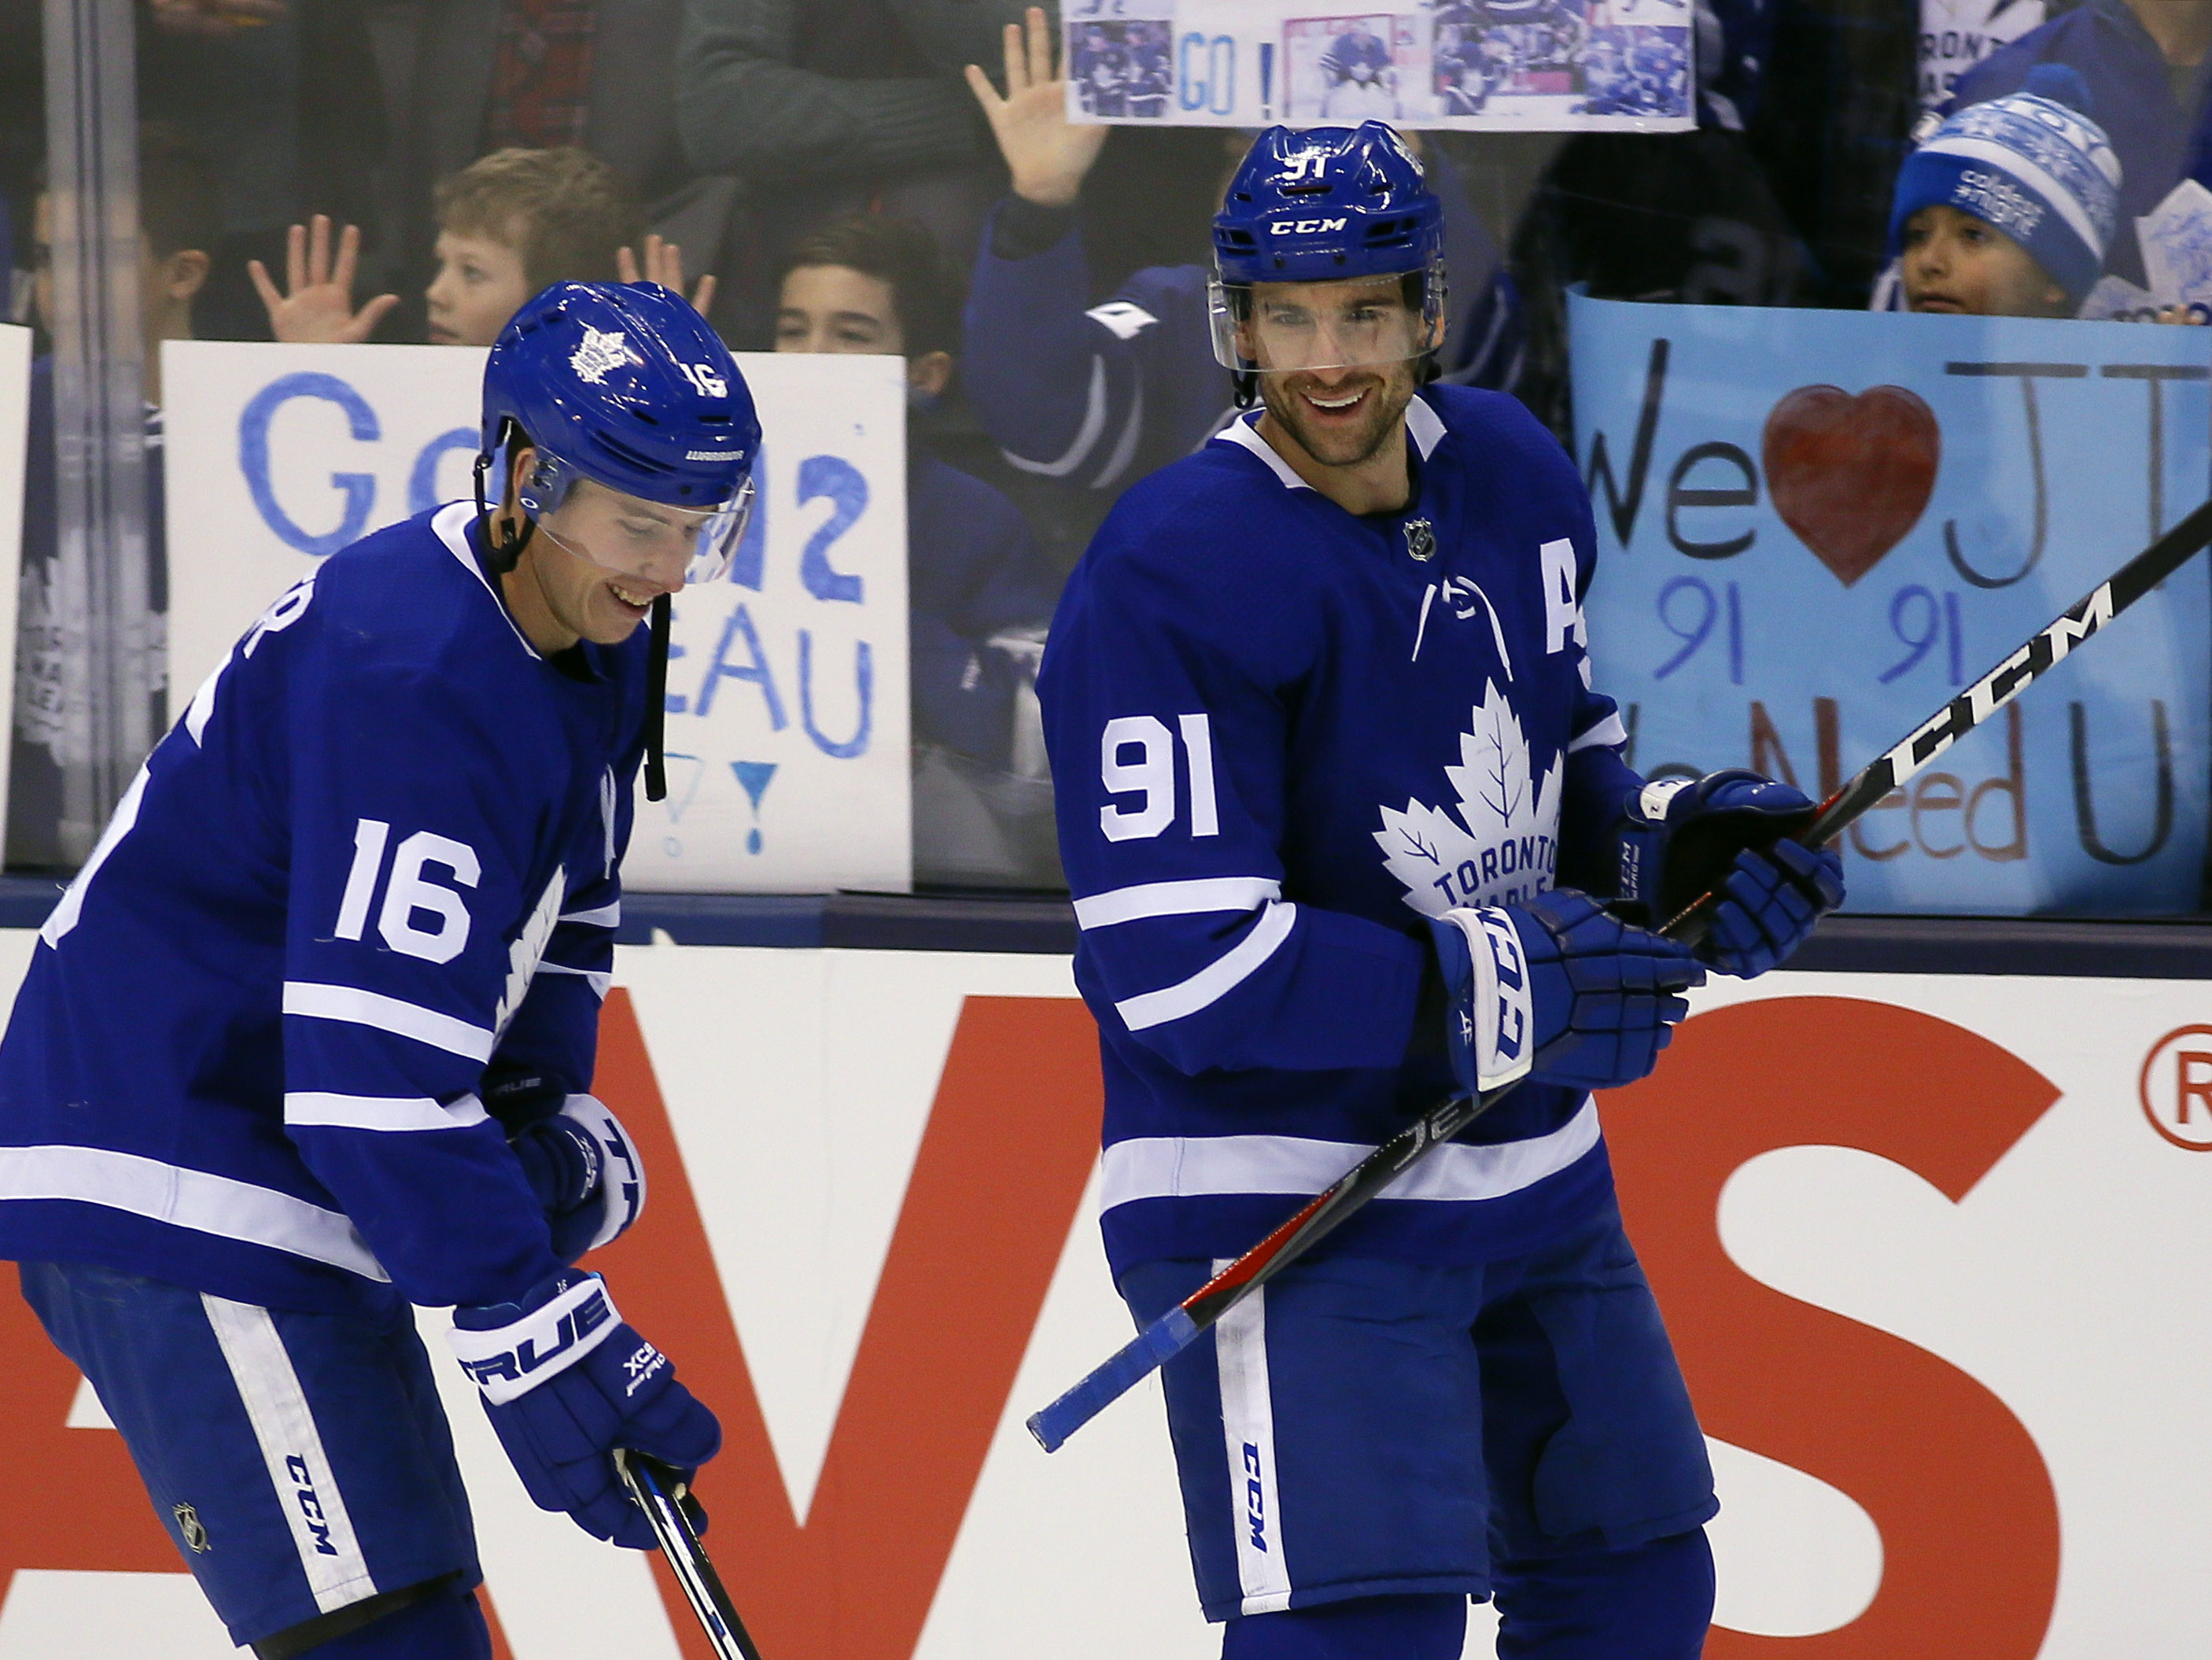 Maple Leafs sign Kapanen, Johnsson to extensions